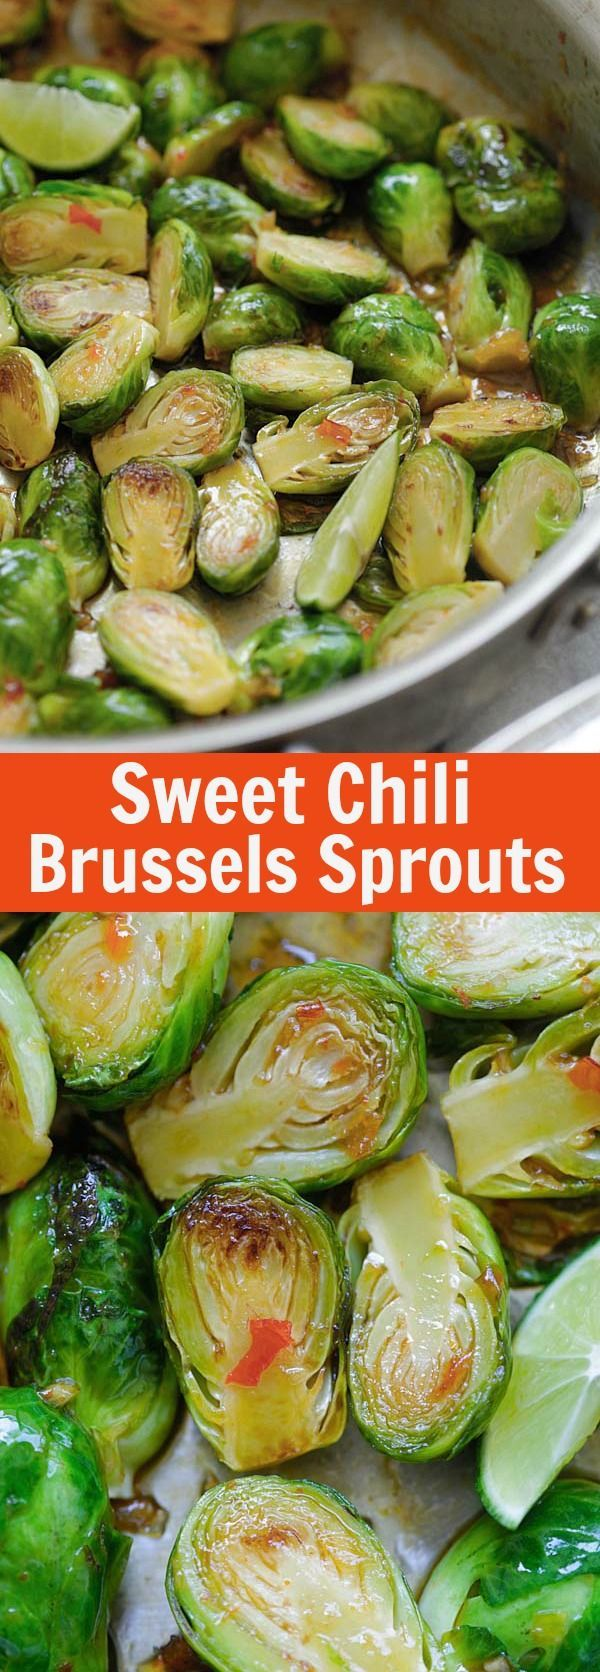 Sweet Chili Brussels Sprouts – easy and delicious sauteed brussels sprouts with Thai sweet chili sauce. Takes 15 mins to make | http://rasamalaysia.com